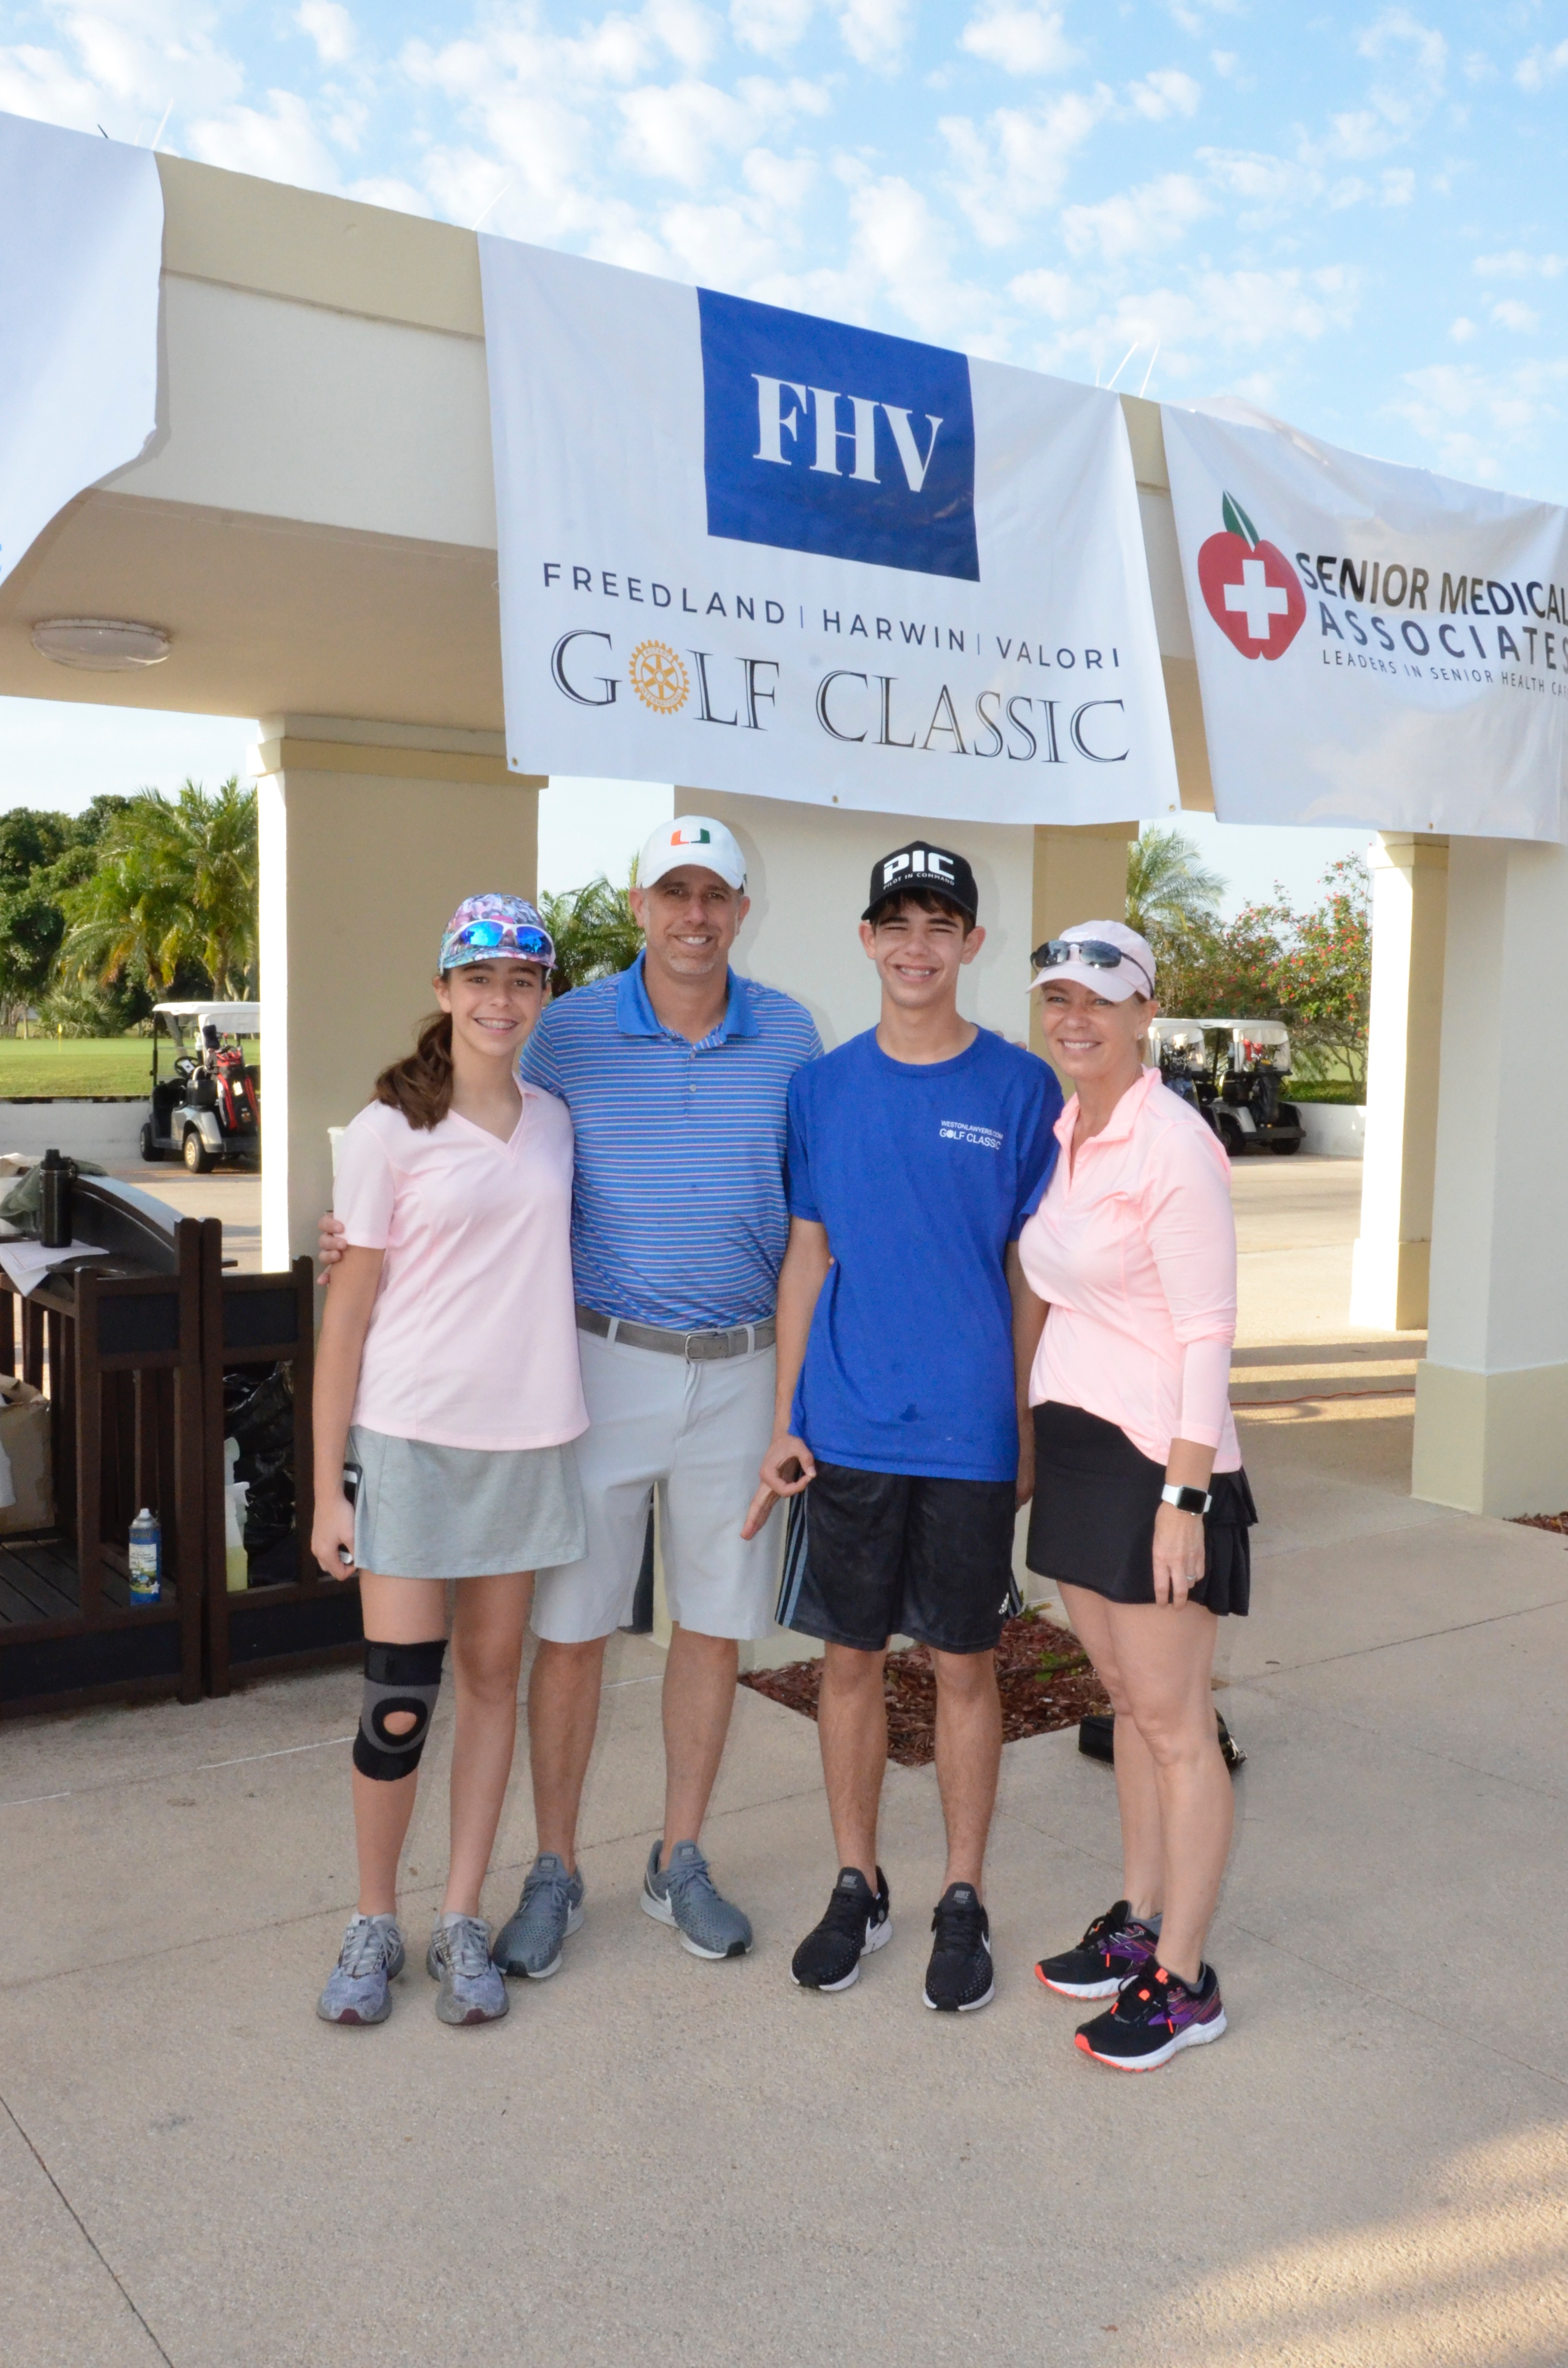 33rd Annual Rotary Golf Classic Sponsored by FHVLEGAL.COM gallery image #57